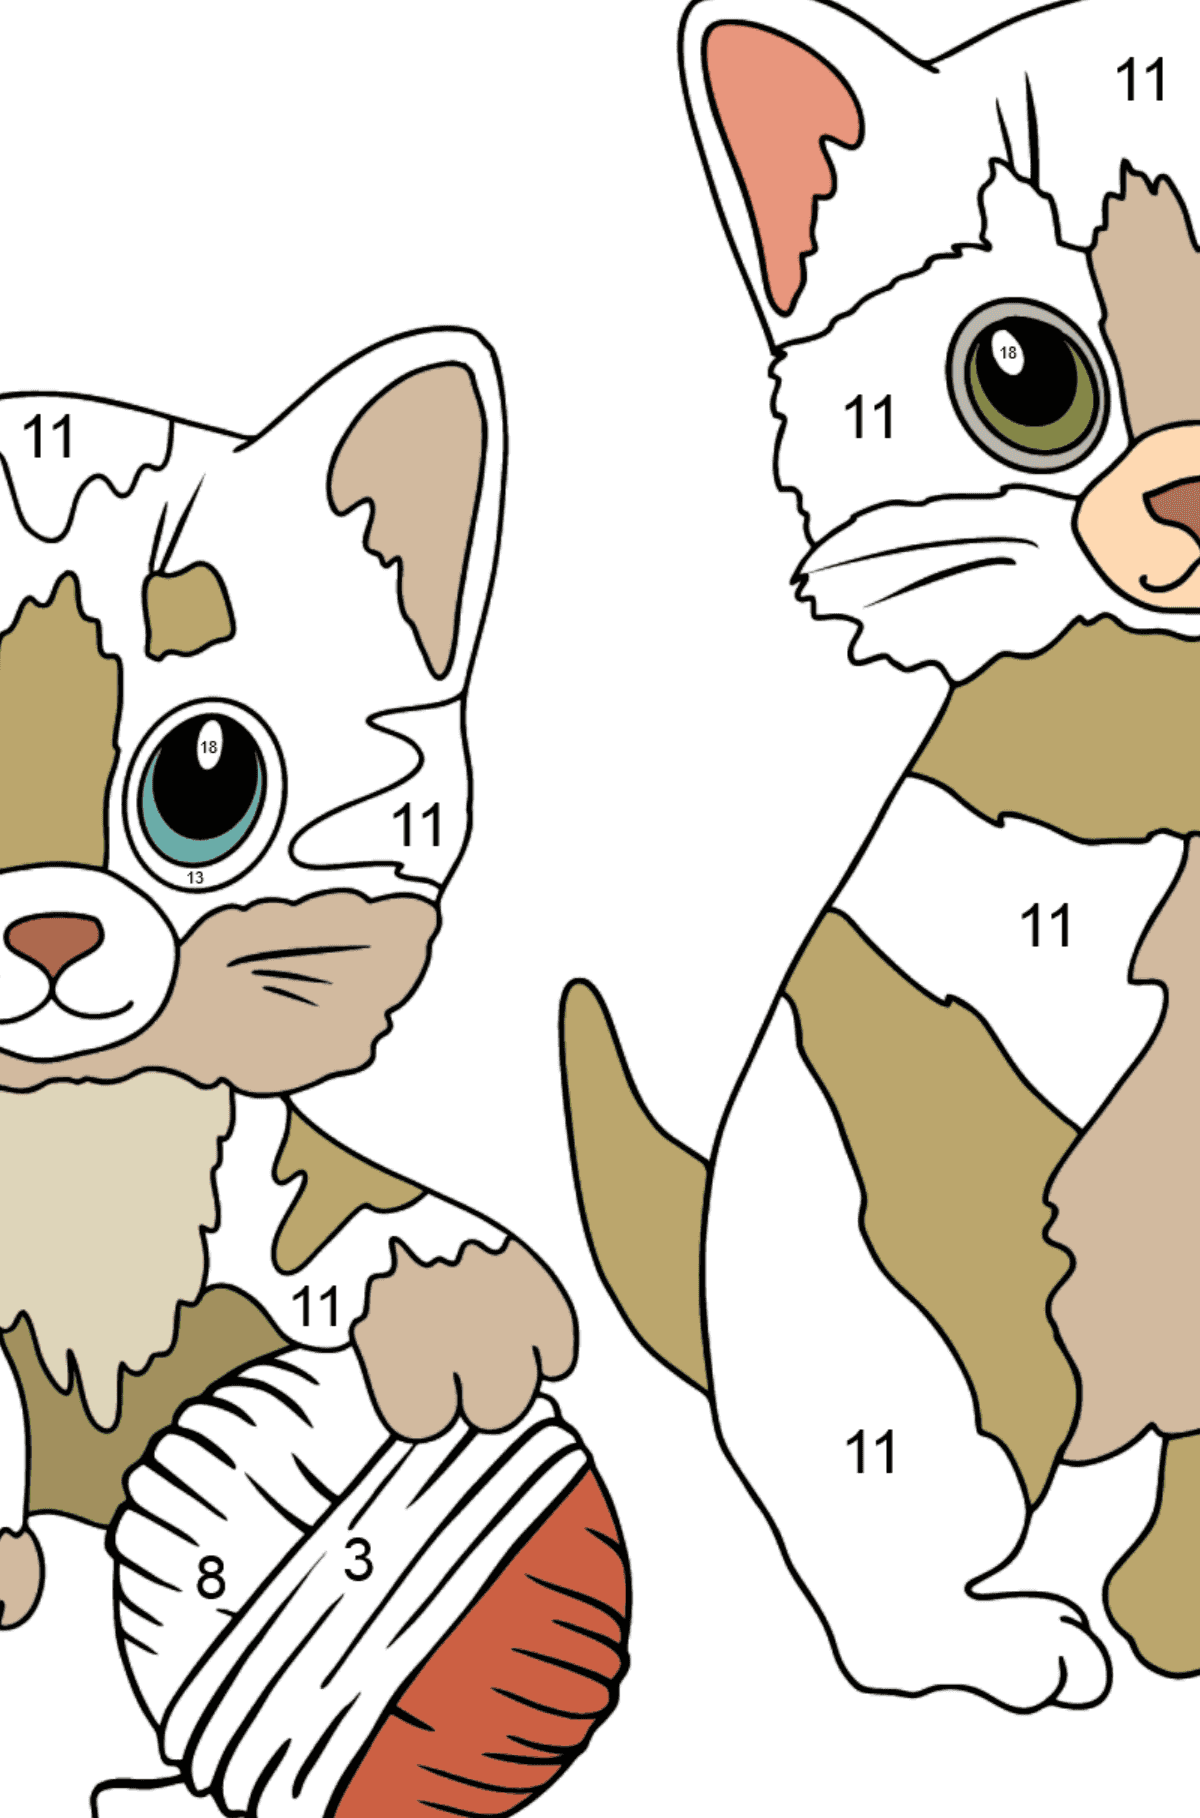 Coloring Page - Kitty Cat - Coloring by Numbers for Kids